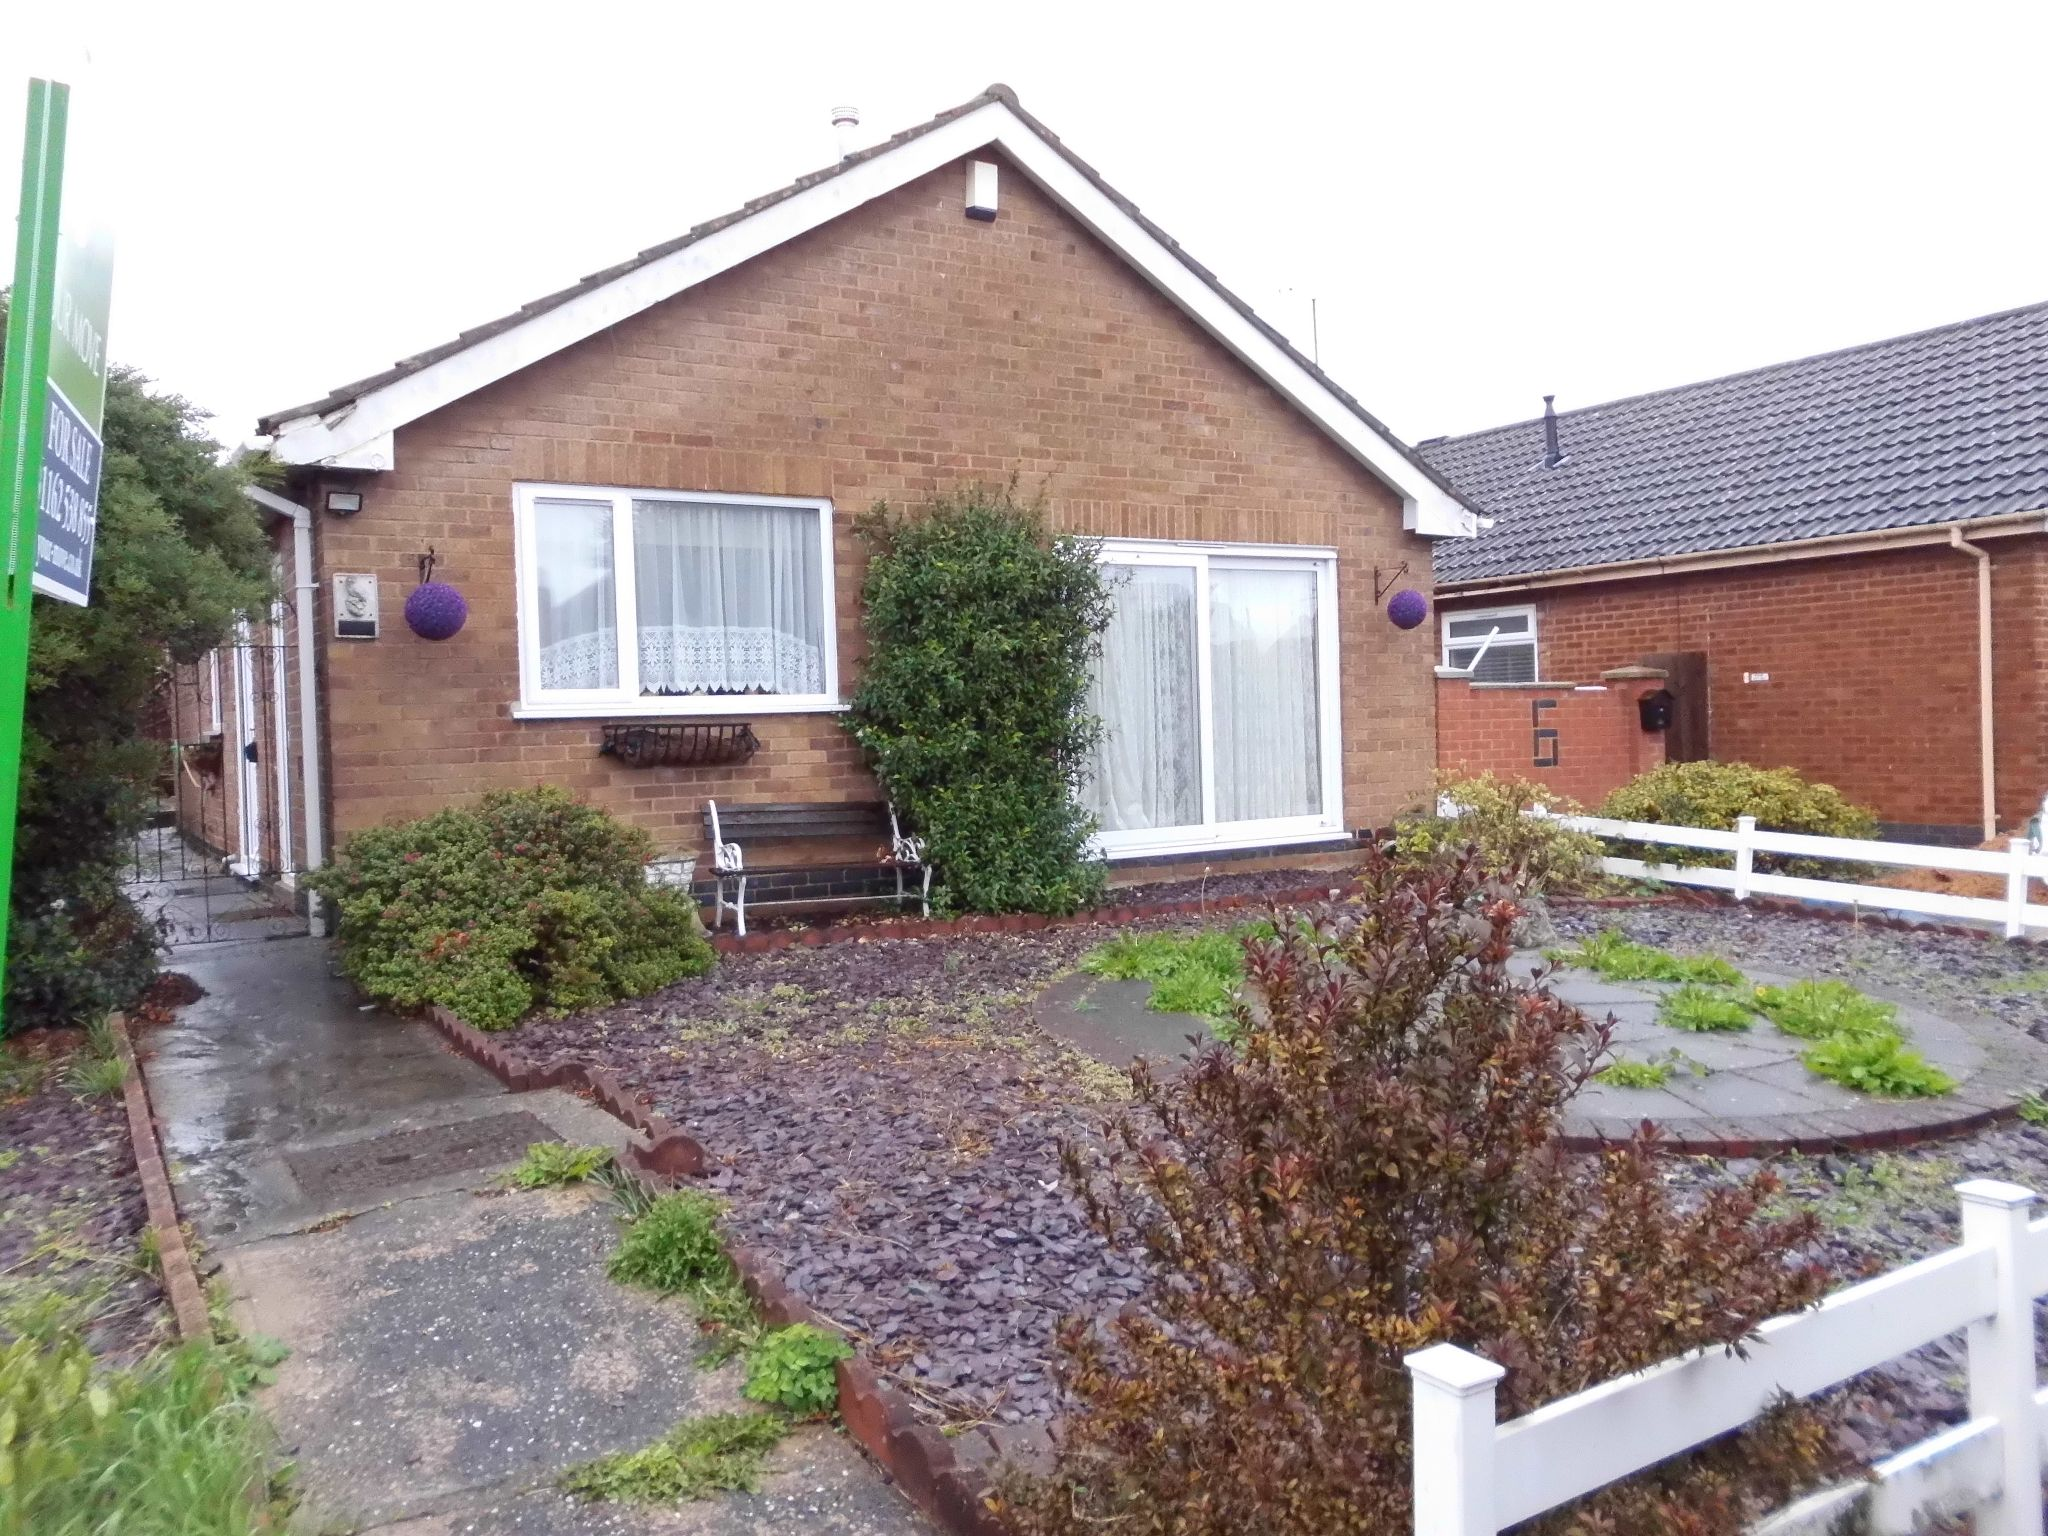 2 bedroom detached bungalow Let Agreed in Leicester - Photograph 1.